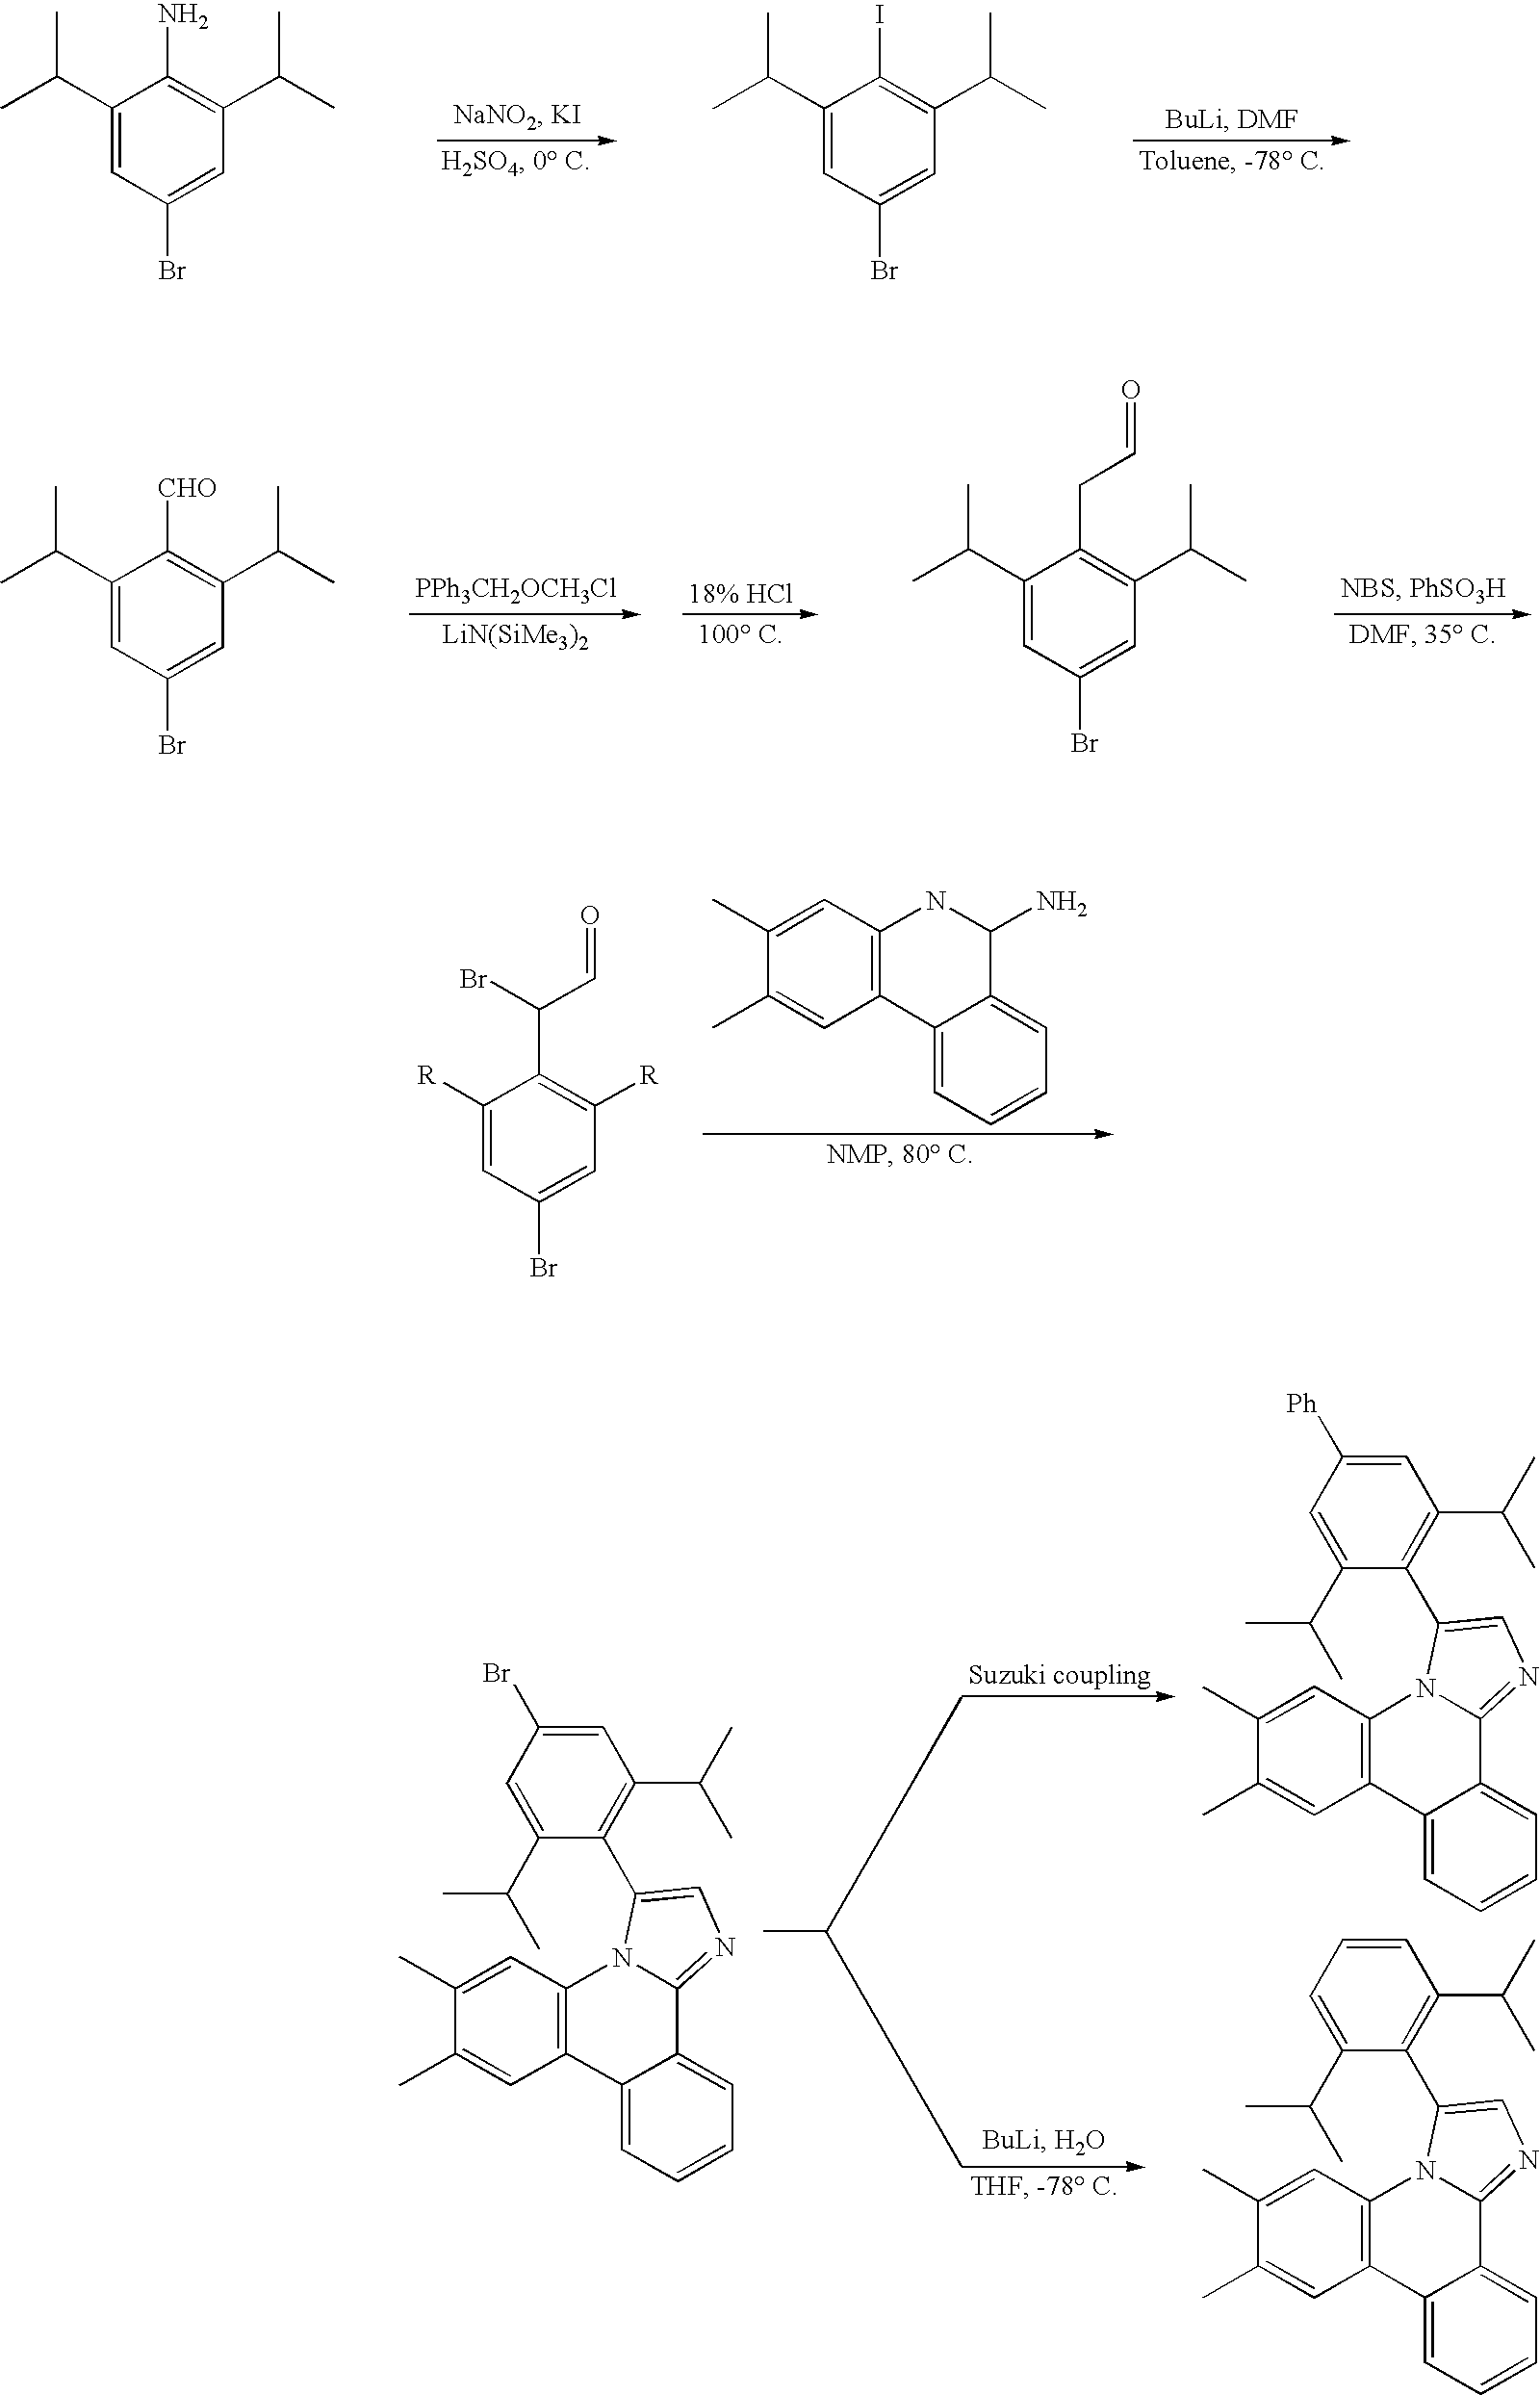 synthesis of p bromoaniline Synthesis of disazo disperse dye compounds derived from 4-bromoaniline and 3-aminophenol as potential near infra-red absorbers jo otutu 1, efurhievwe em 2.